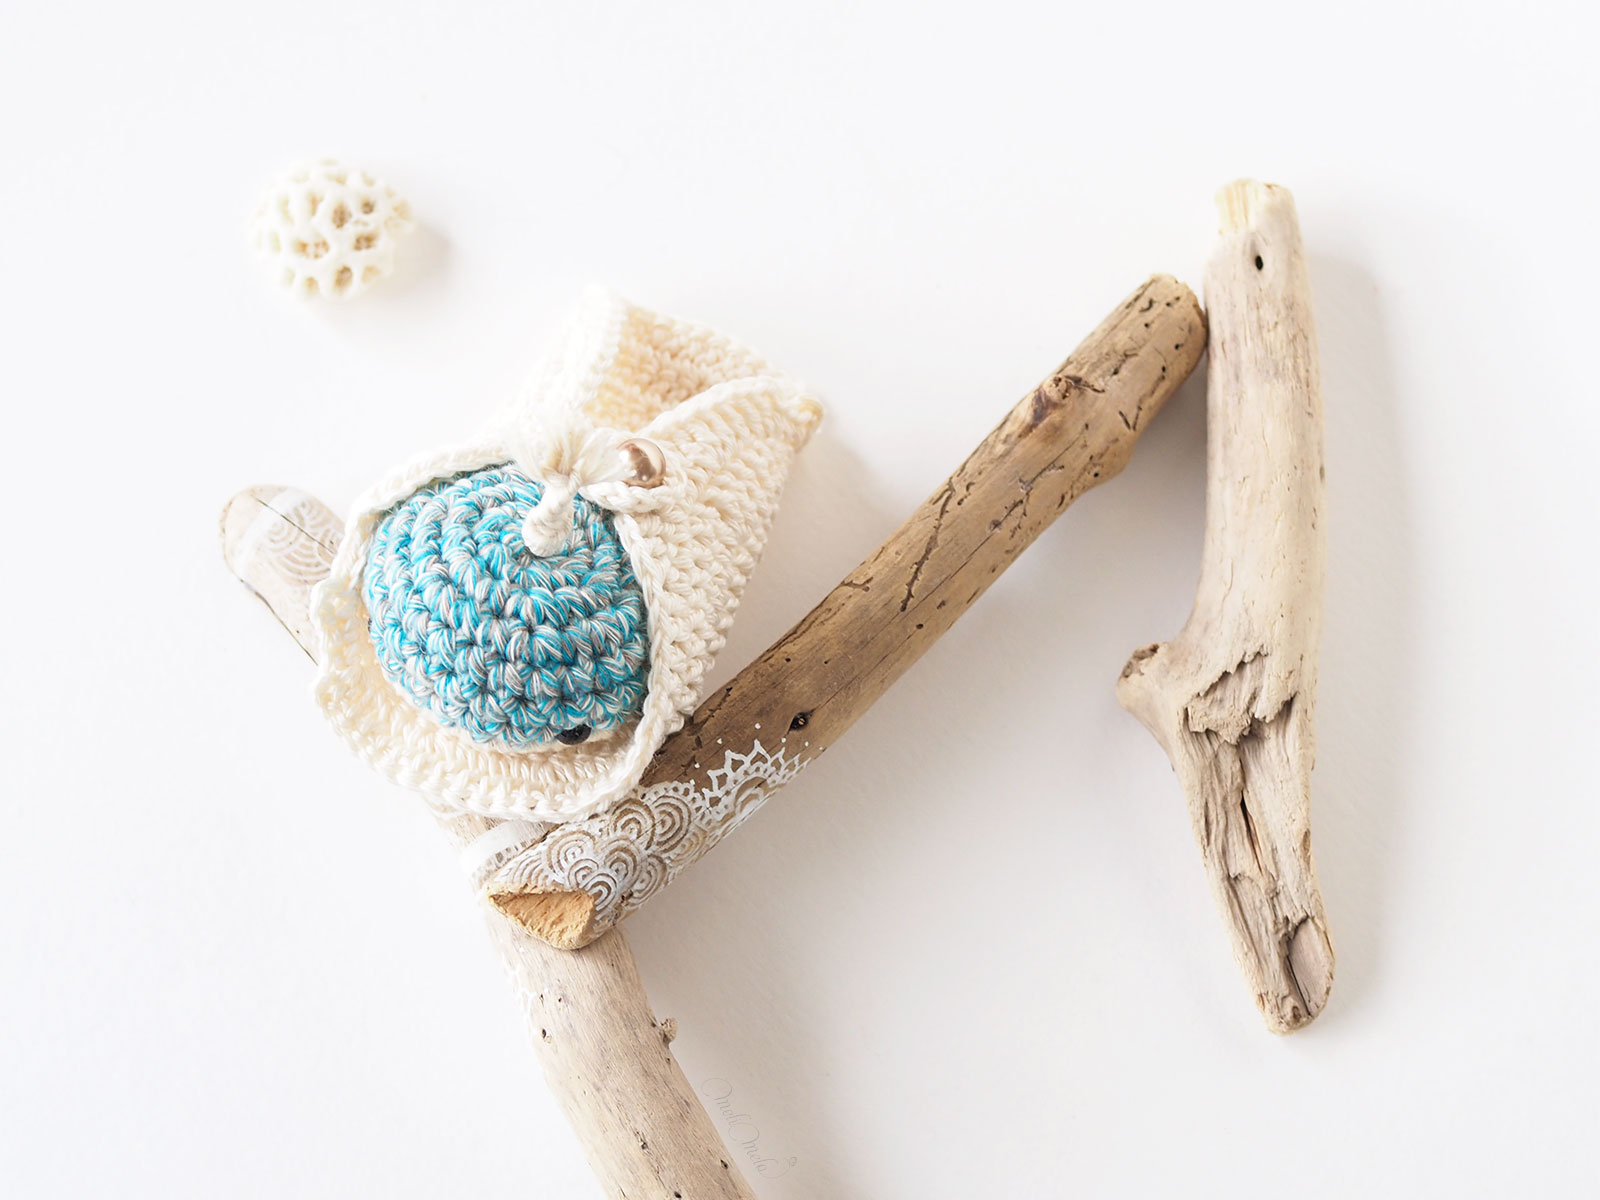 mini-baleine cosy coquillage mignonneries au crochet laboutiquedemelimelo